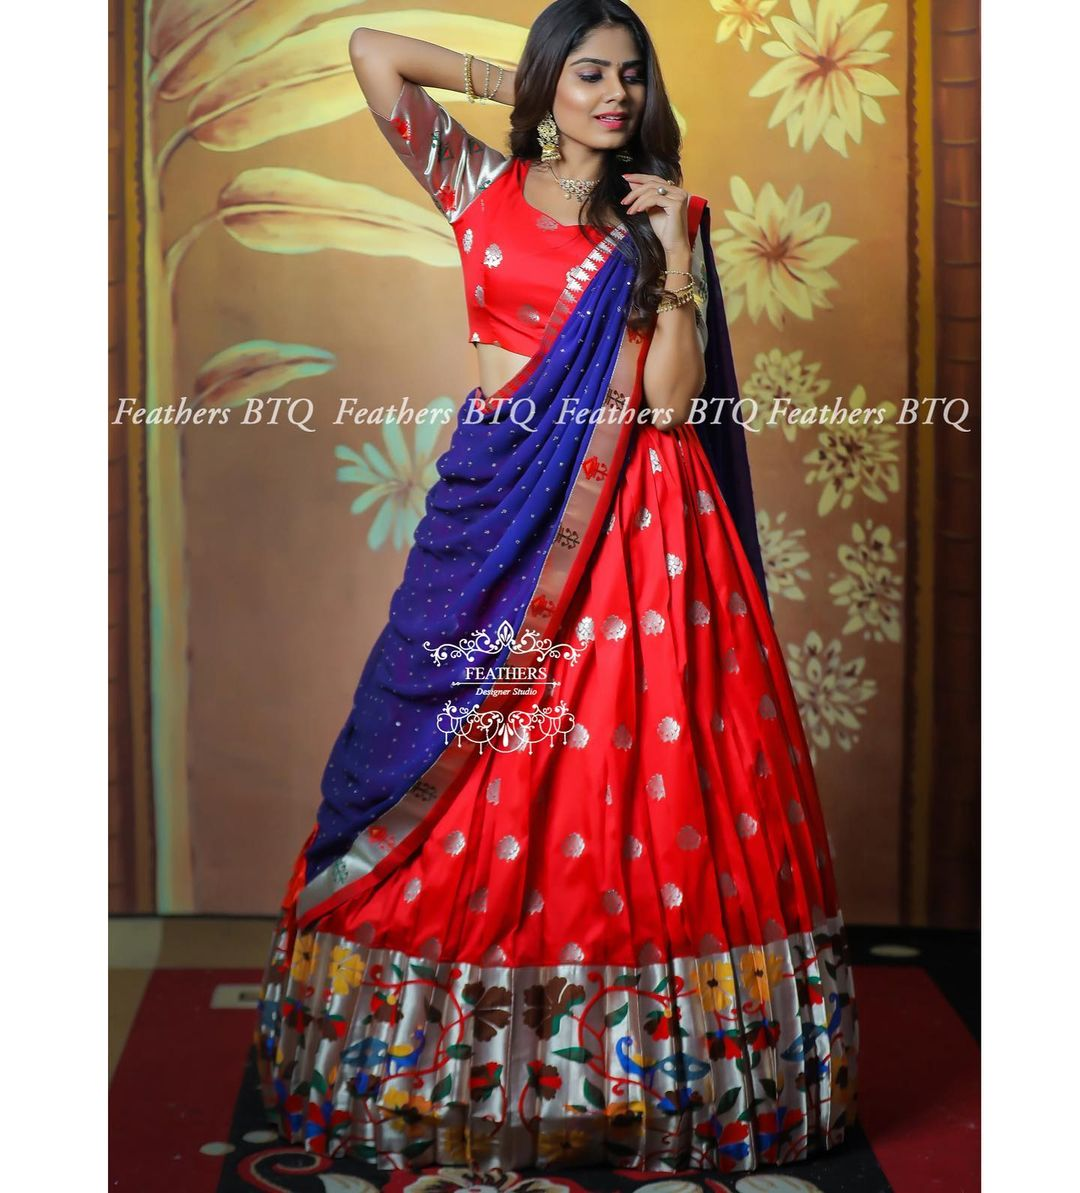 Stunning red color paithani pattu lehenga and blouse with blue color dupatta. 2021-04-07